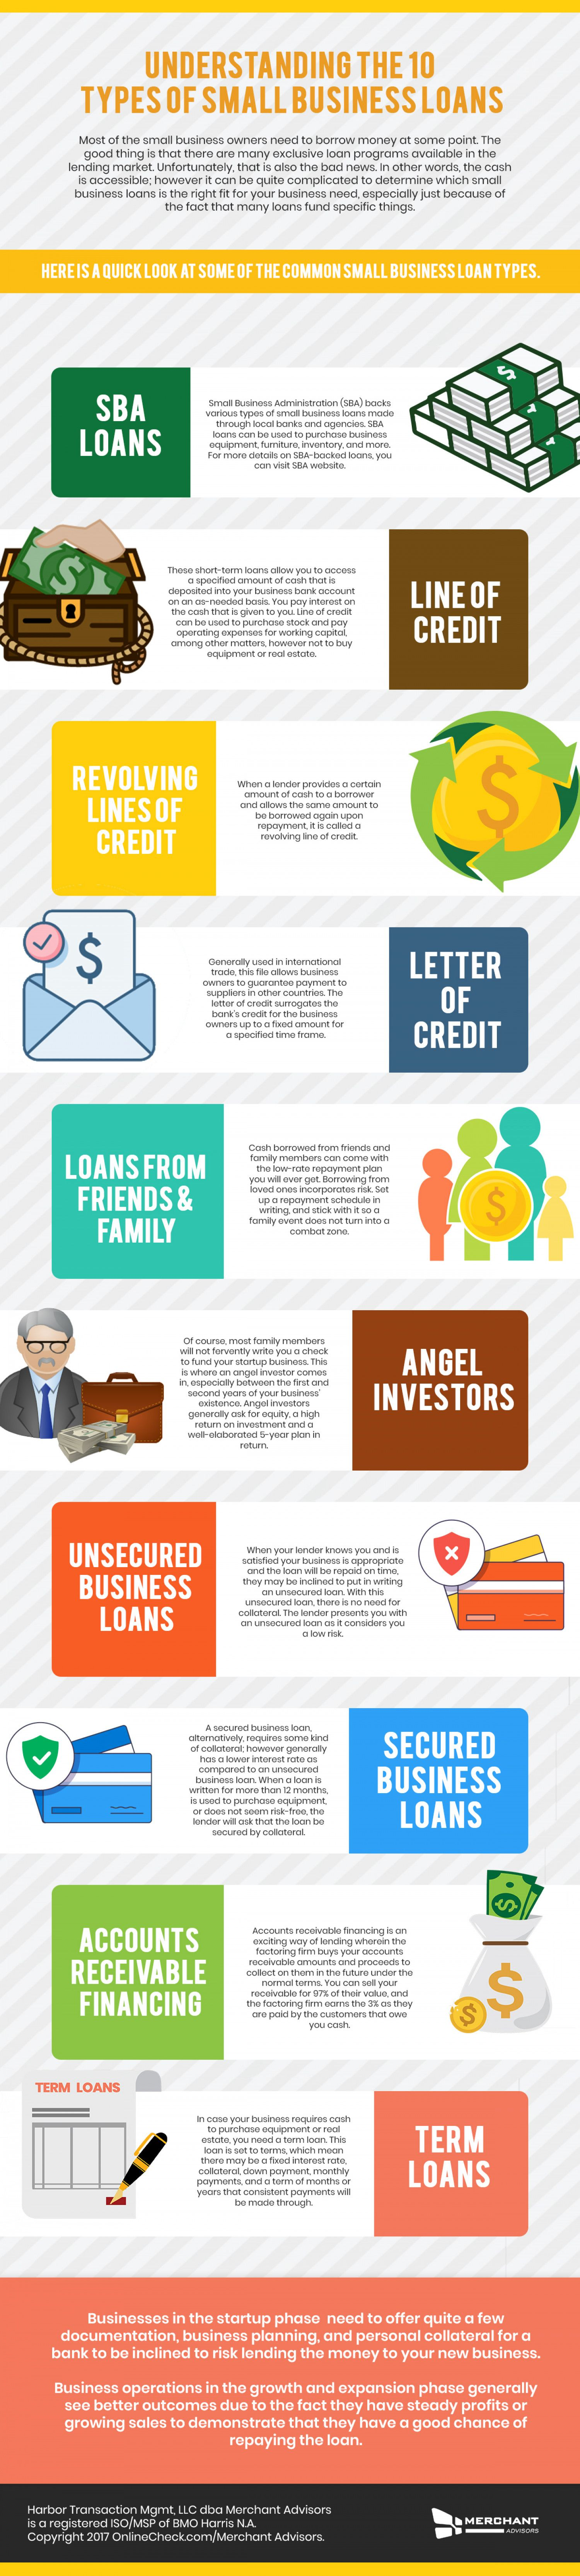 Understanding The 10 Types Of Small Business Loans Types Of Small Business Business Loans Small Business Resources